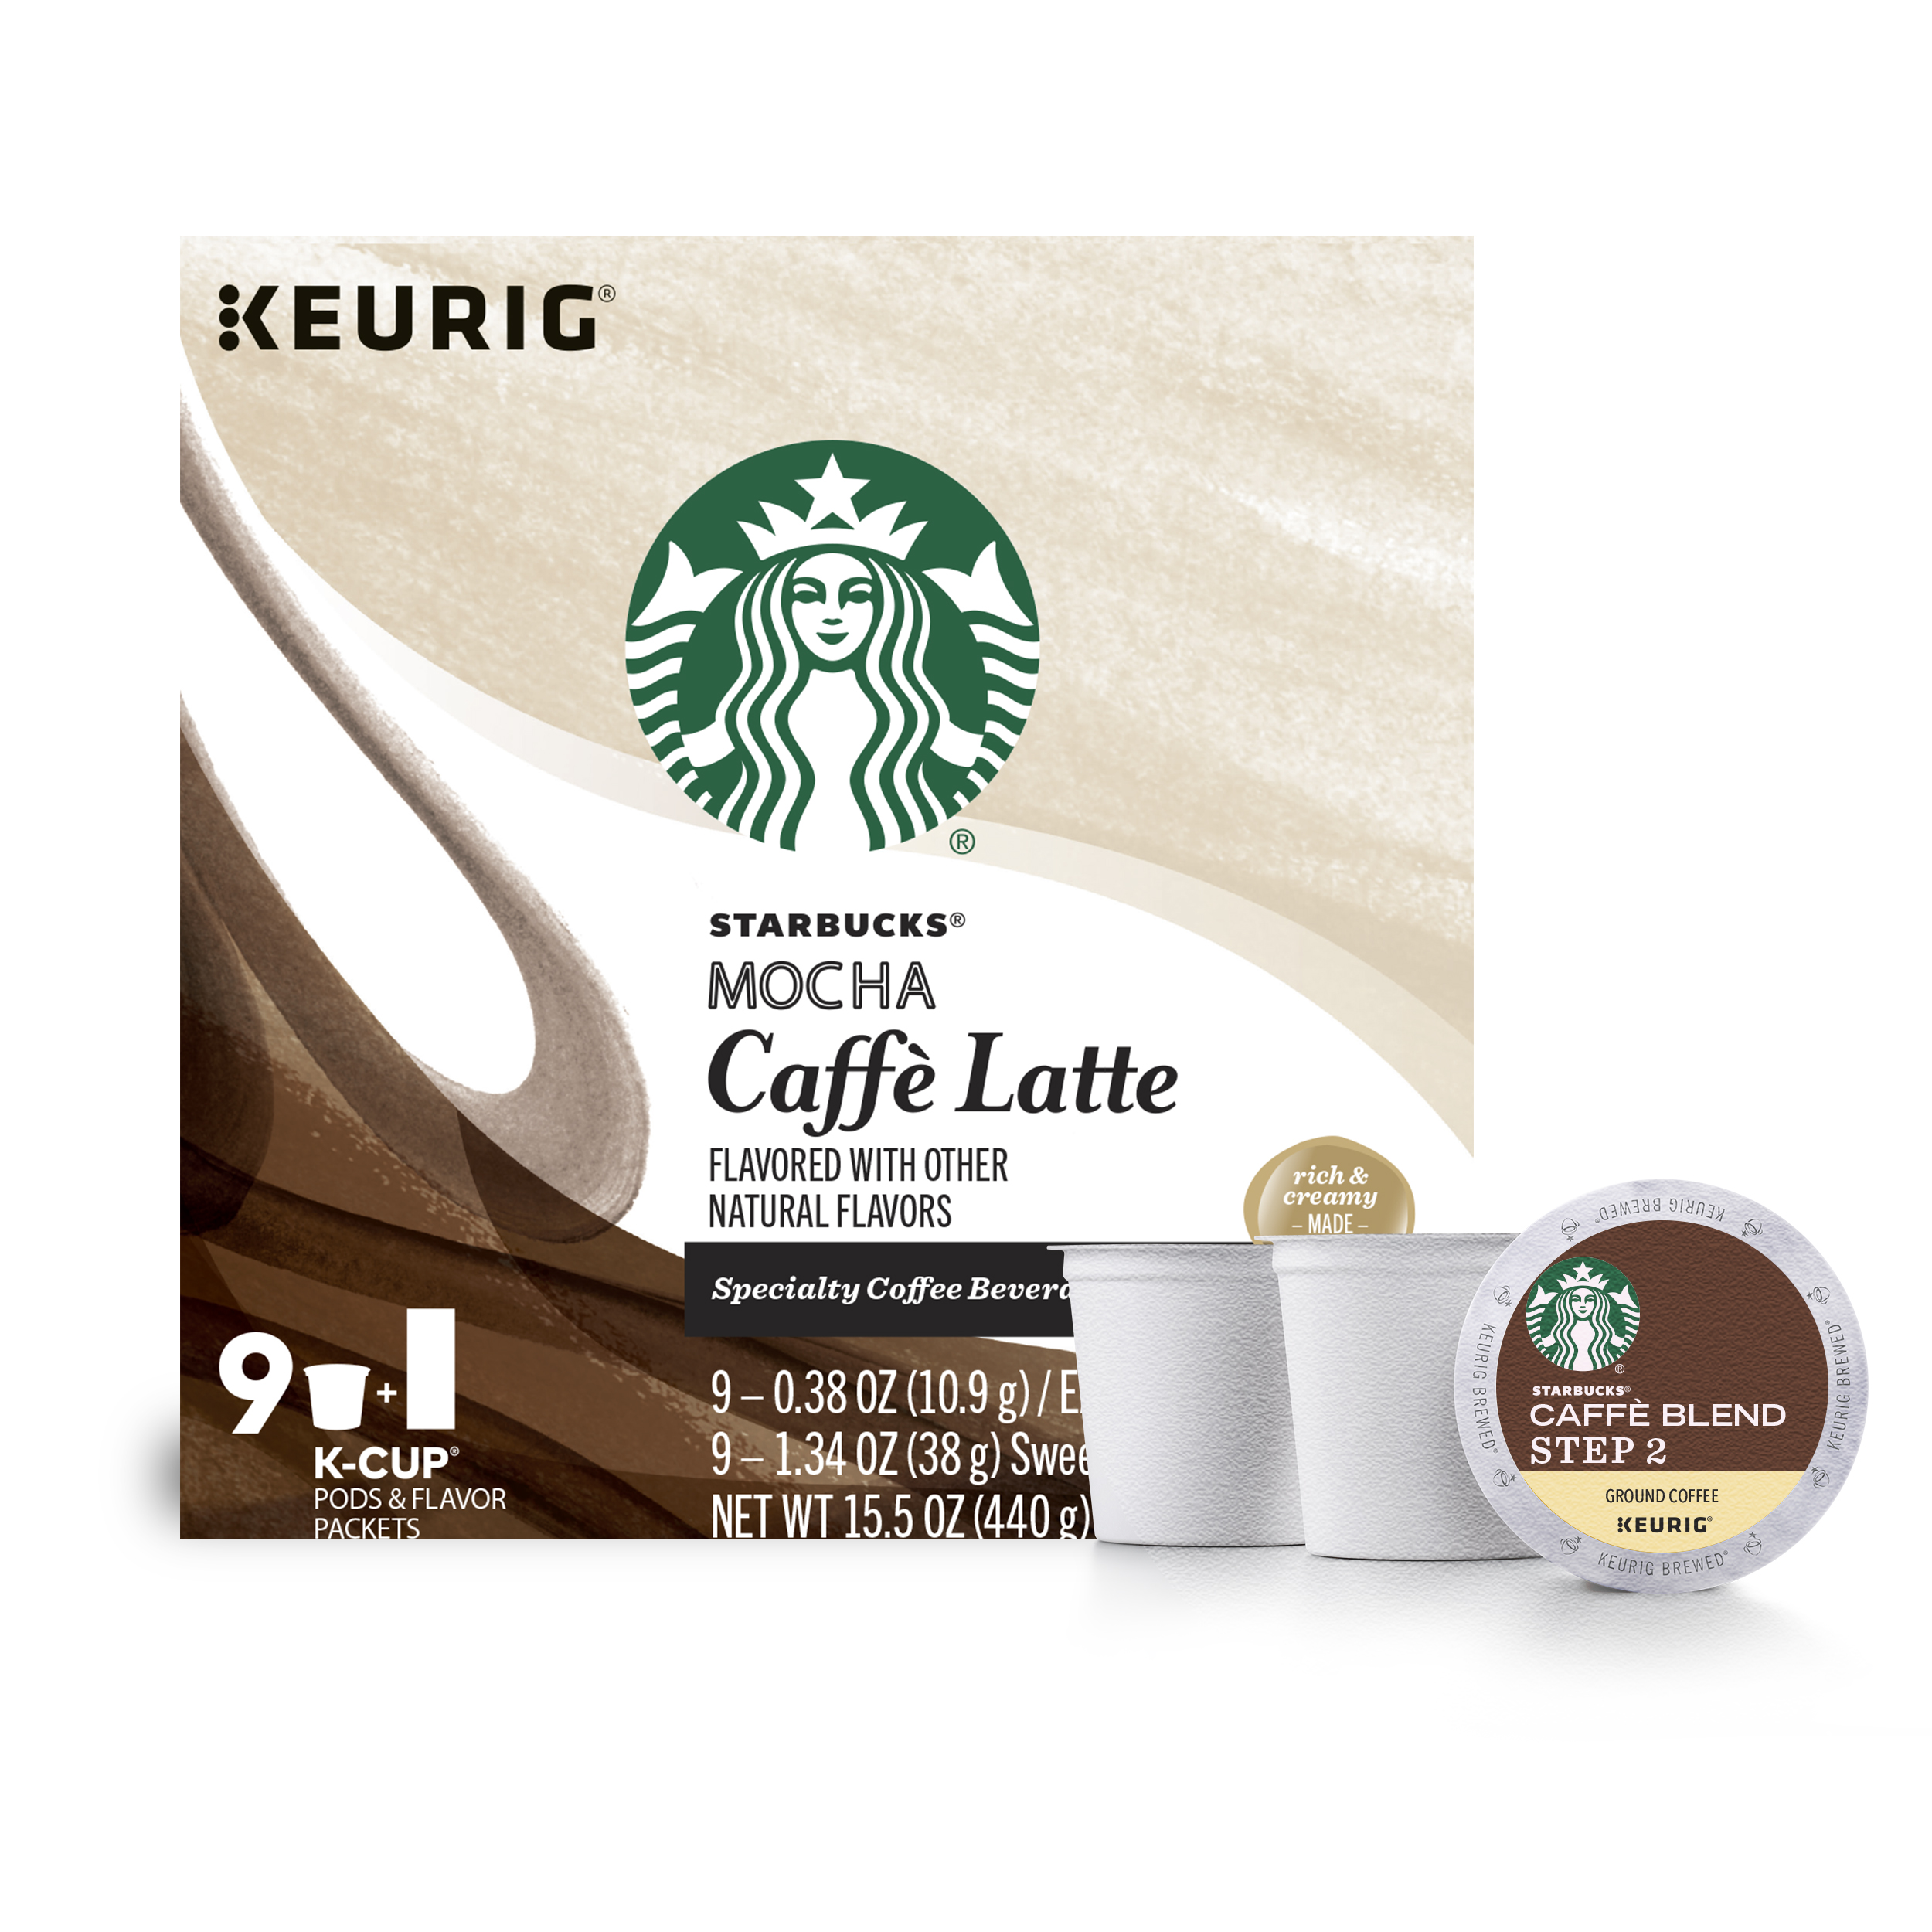 Starbucks Mocha Caffe Latte Medium Roast Single Cup Coffee for Keurig Brewers, 1 Box of 9 (9 Total K-Cup Pods)